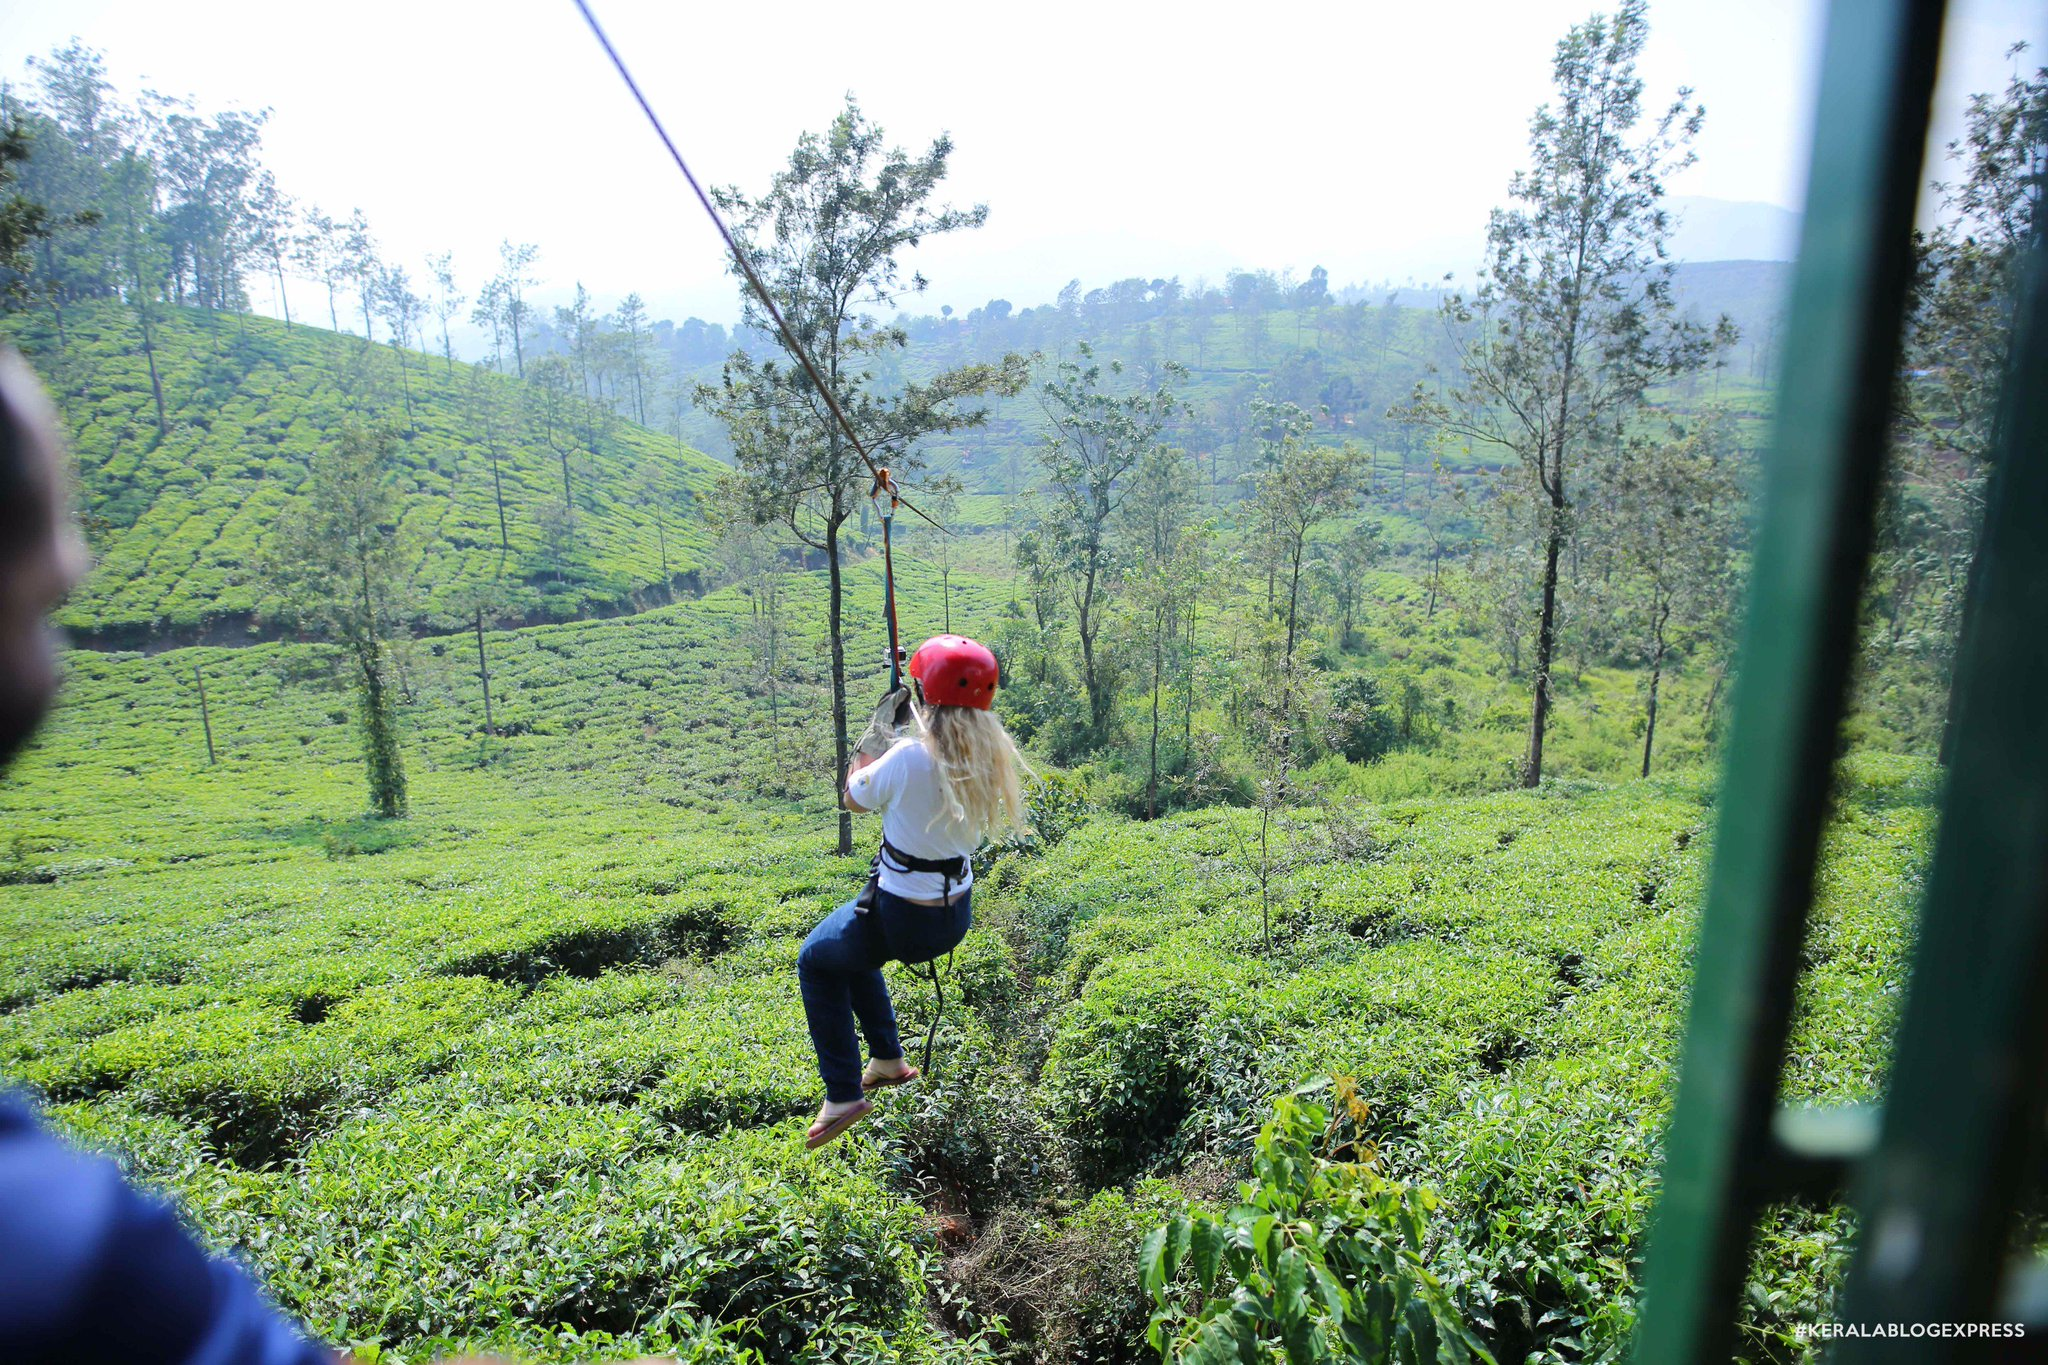 Zipline your way through the tea plantations of #Wayanad. The bloggers highly recommend it :)  #keralablogexpress #muddyboots #pozhuthana https://t.co/2VMvRtUSo5